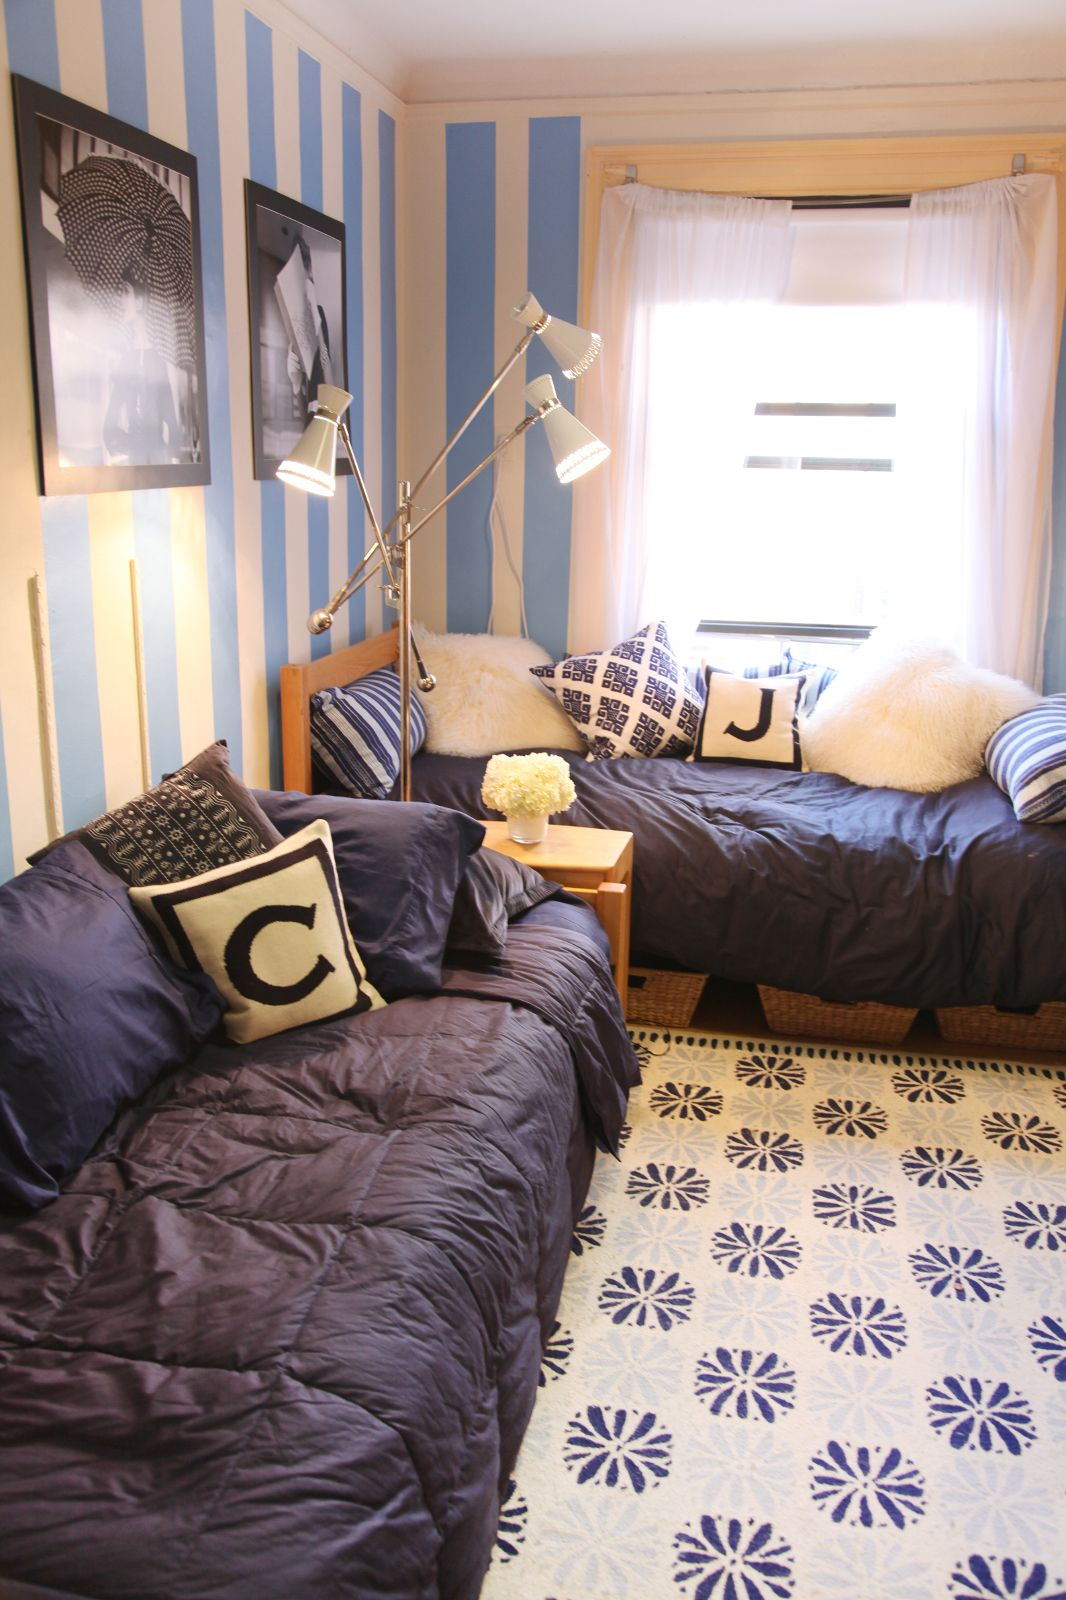 Ideas For Dorm Room: Cool Decorating Ideas For Dorm Rooms